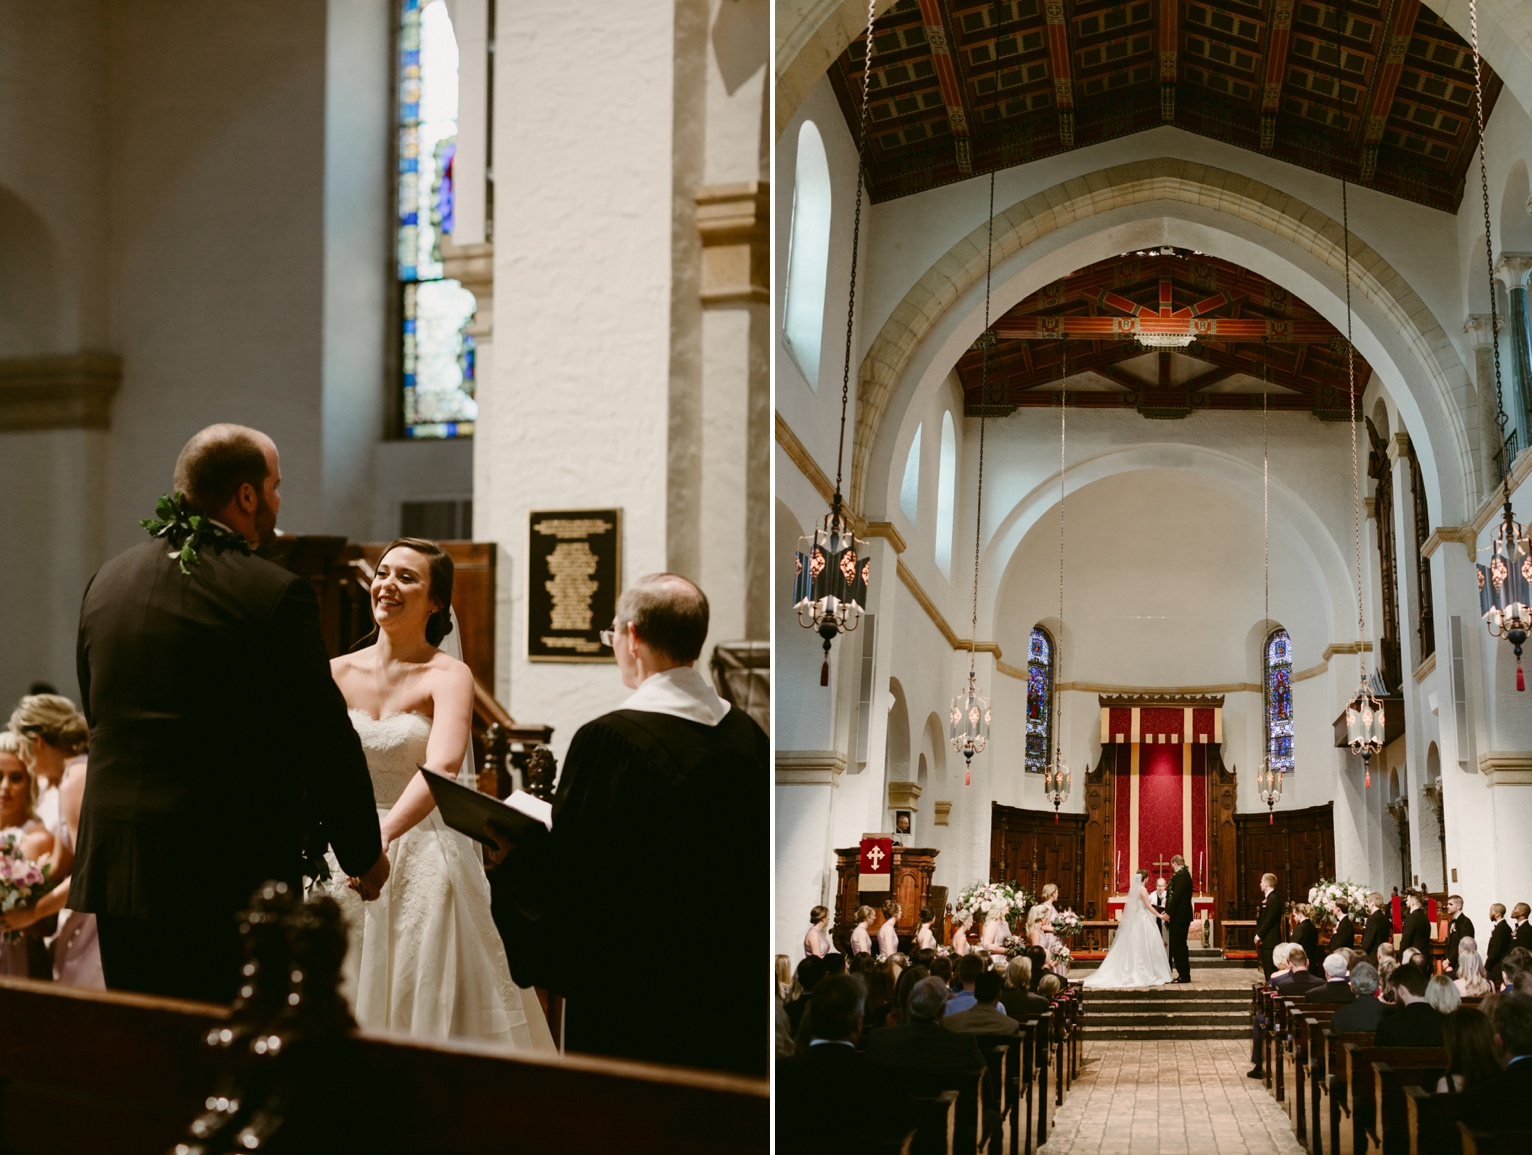 Dreamtownco.com_blog_David&Kiana_Wedding_0072.jpg